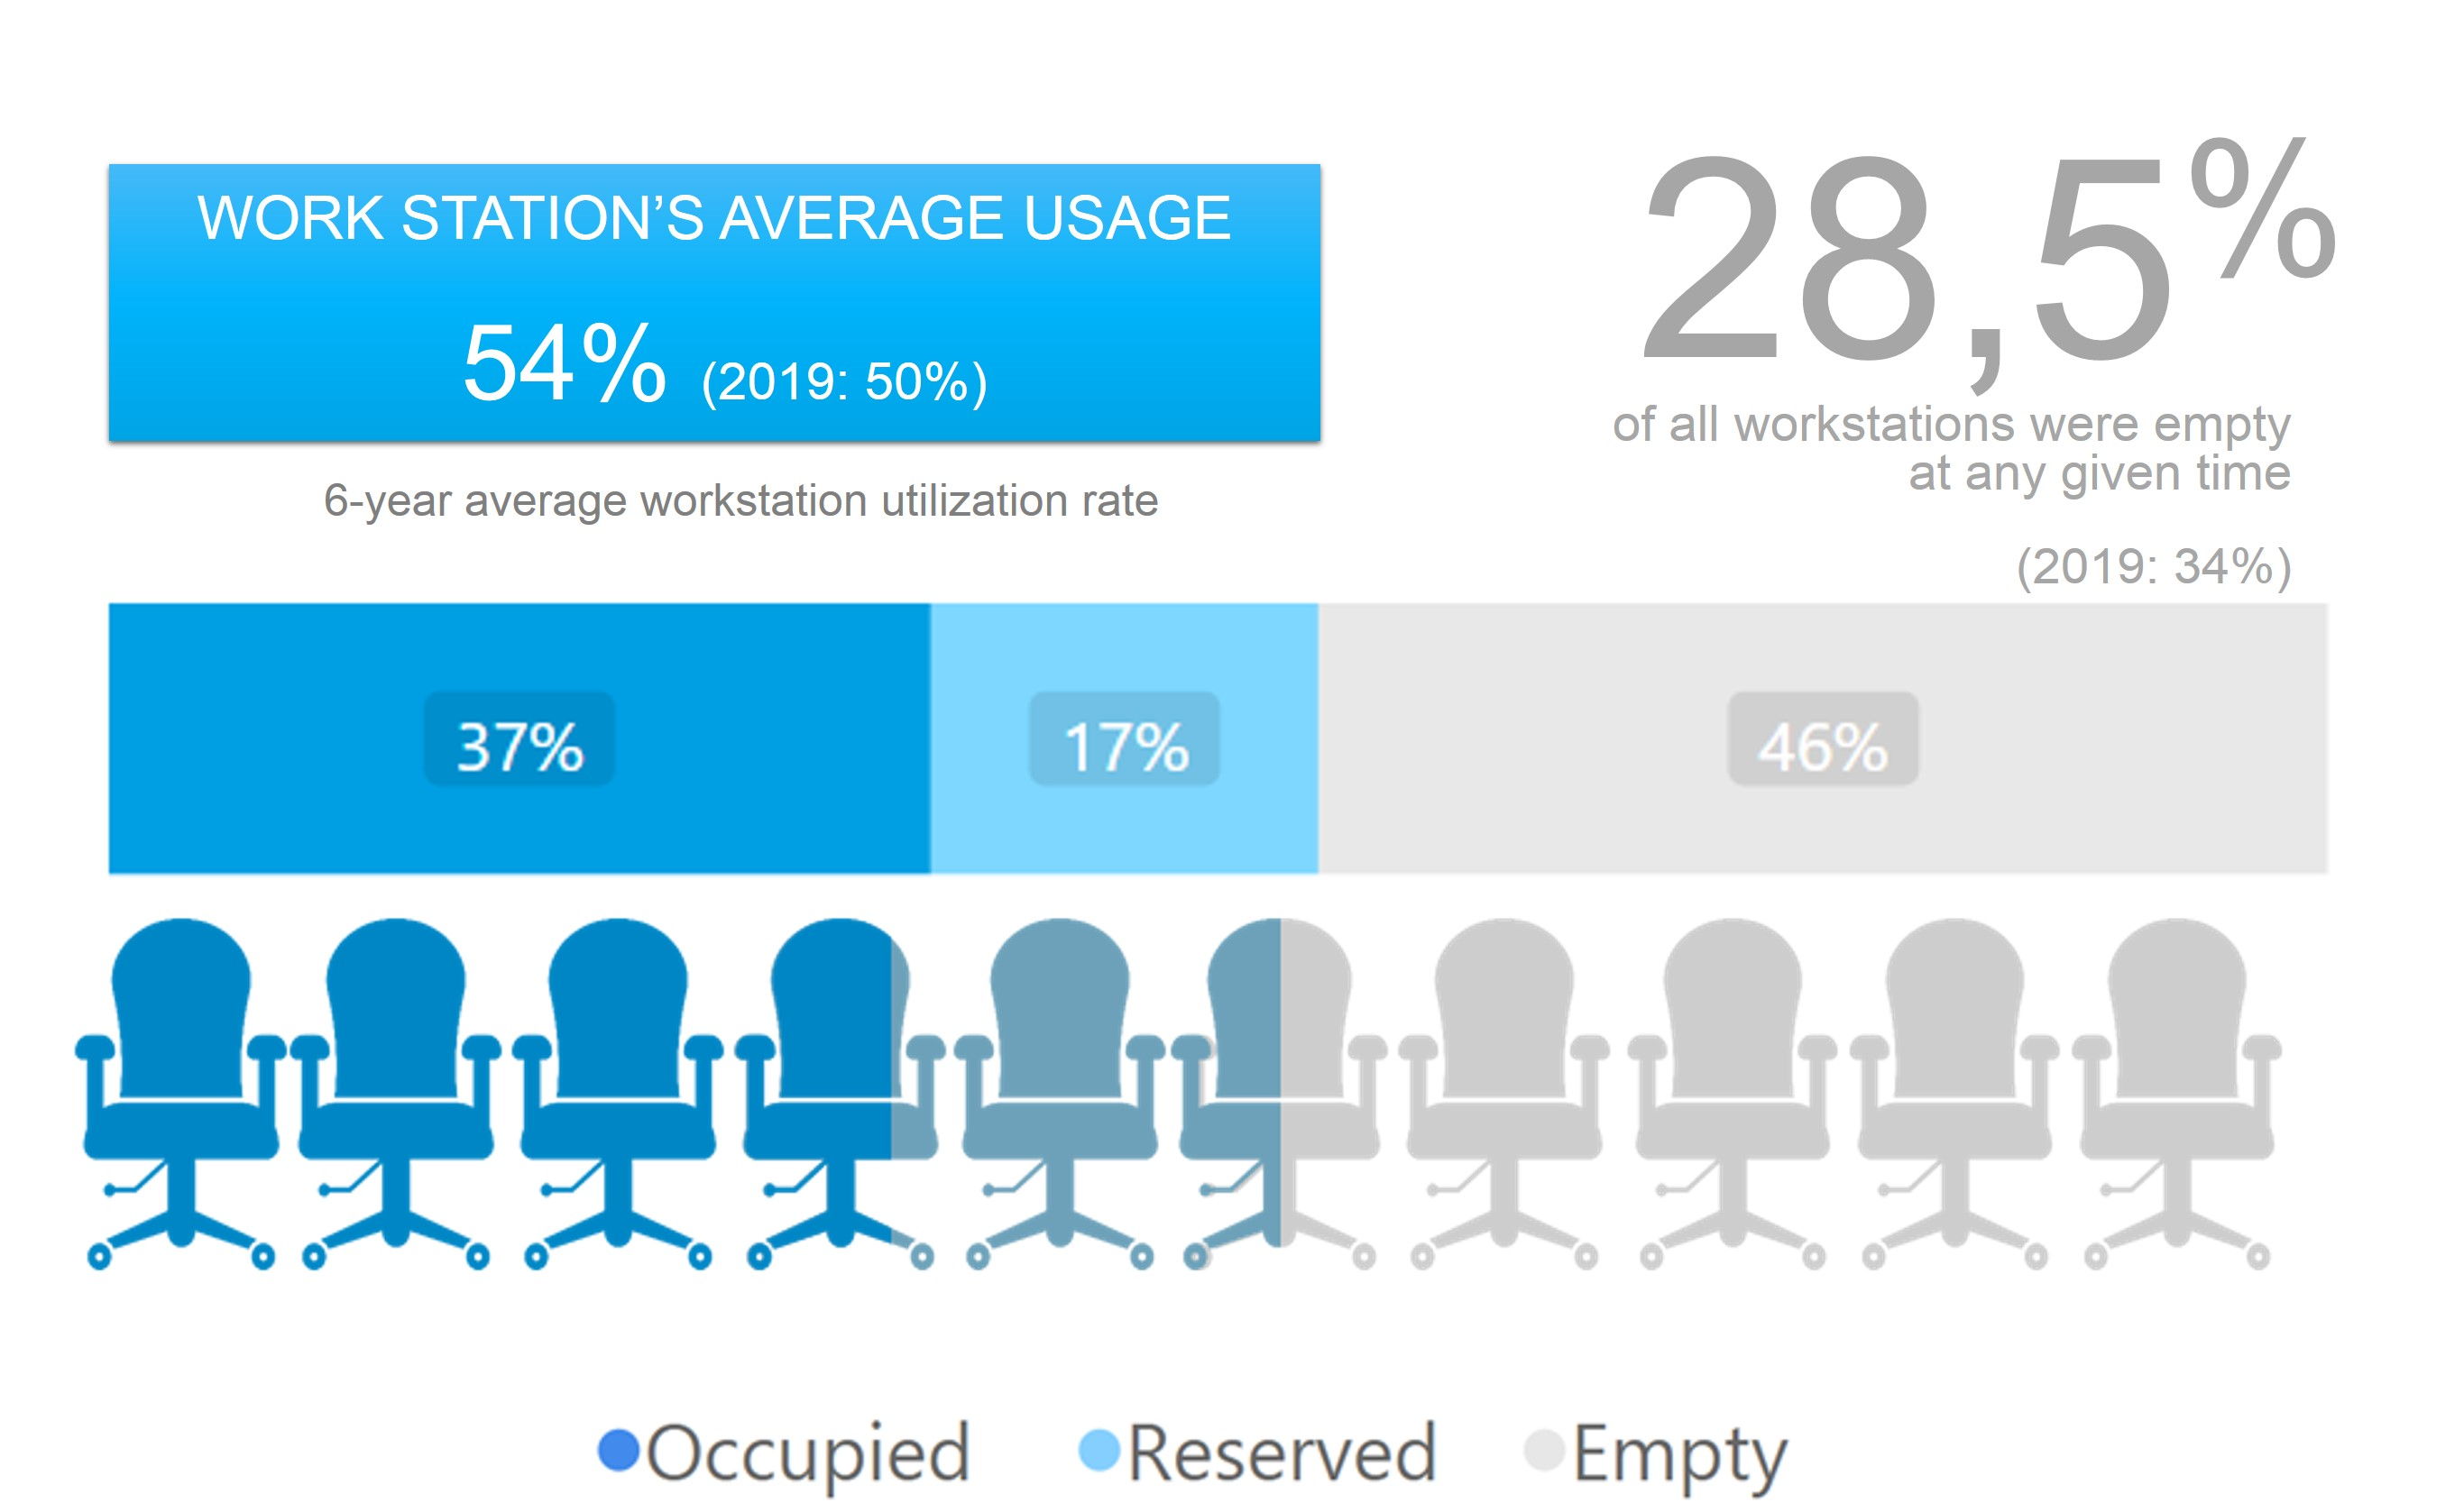 "Work desks are either in use (37%) or temporarily unoccupied (17%) each day at an average of 54% of the time. This is called the ""average utilization rate""."